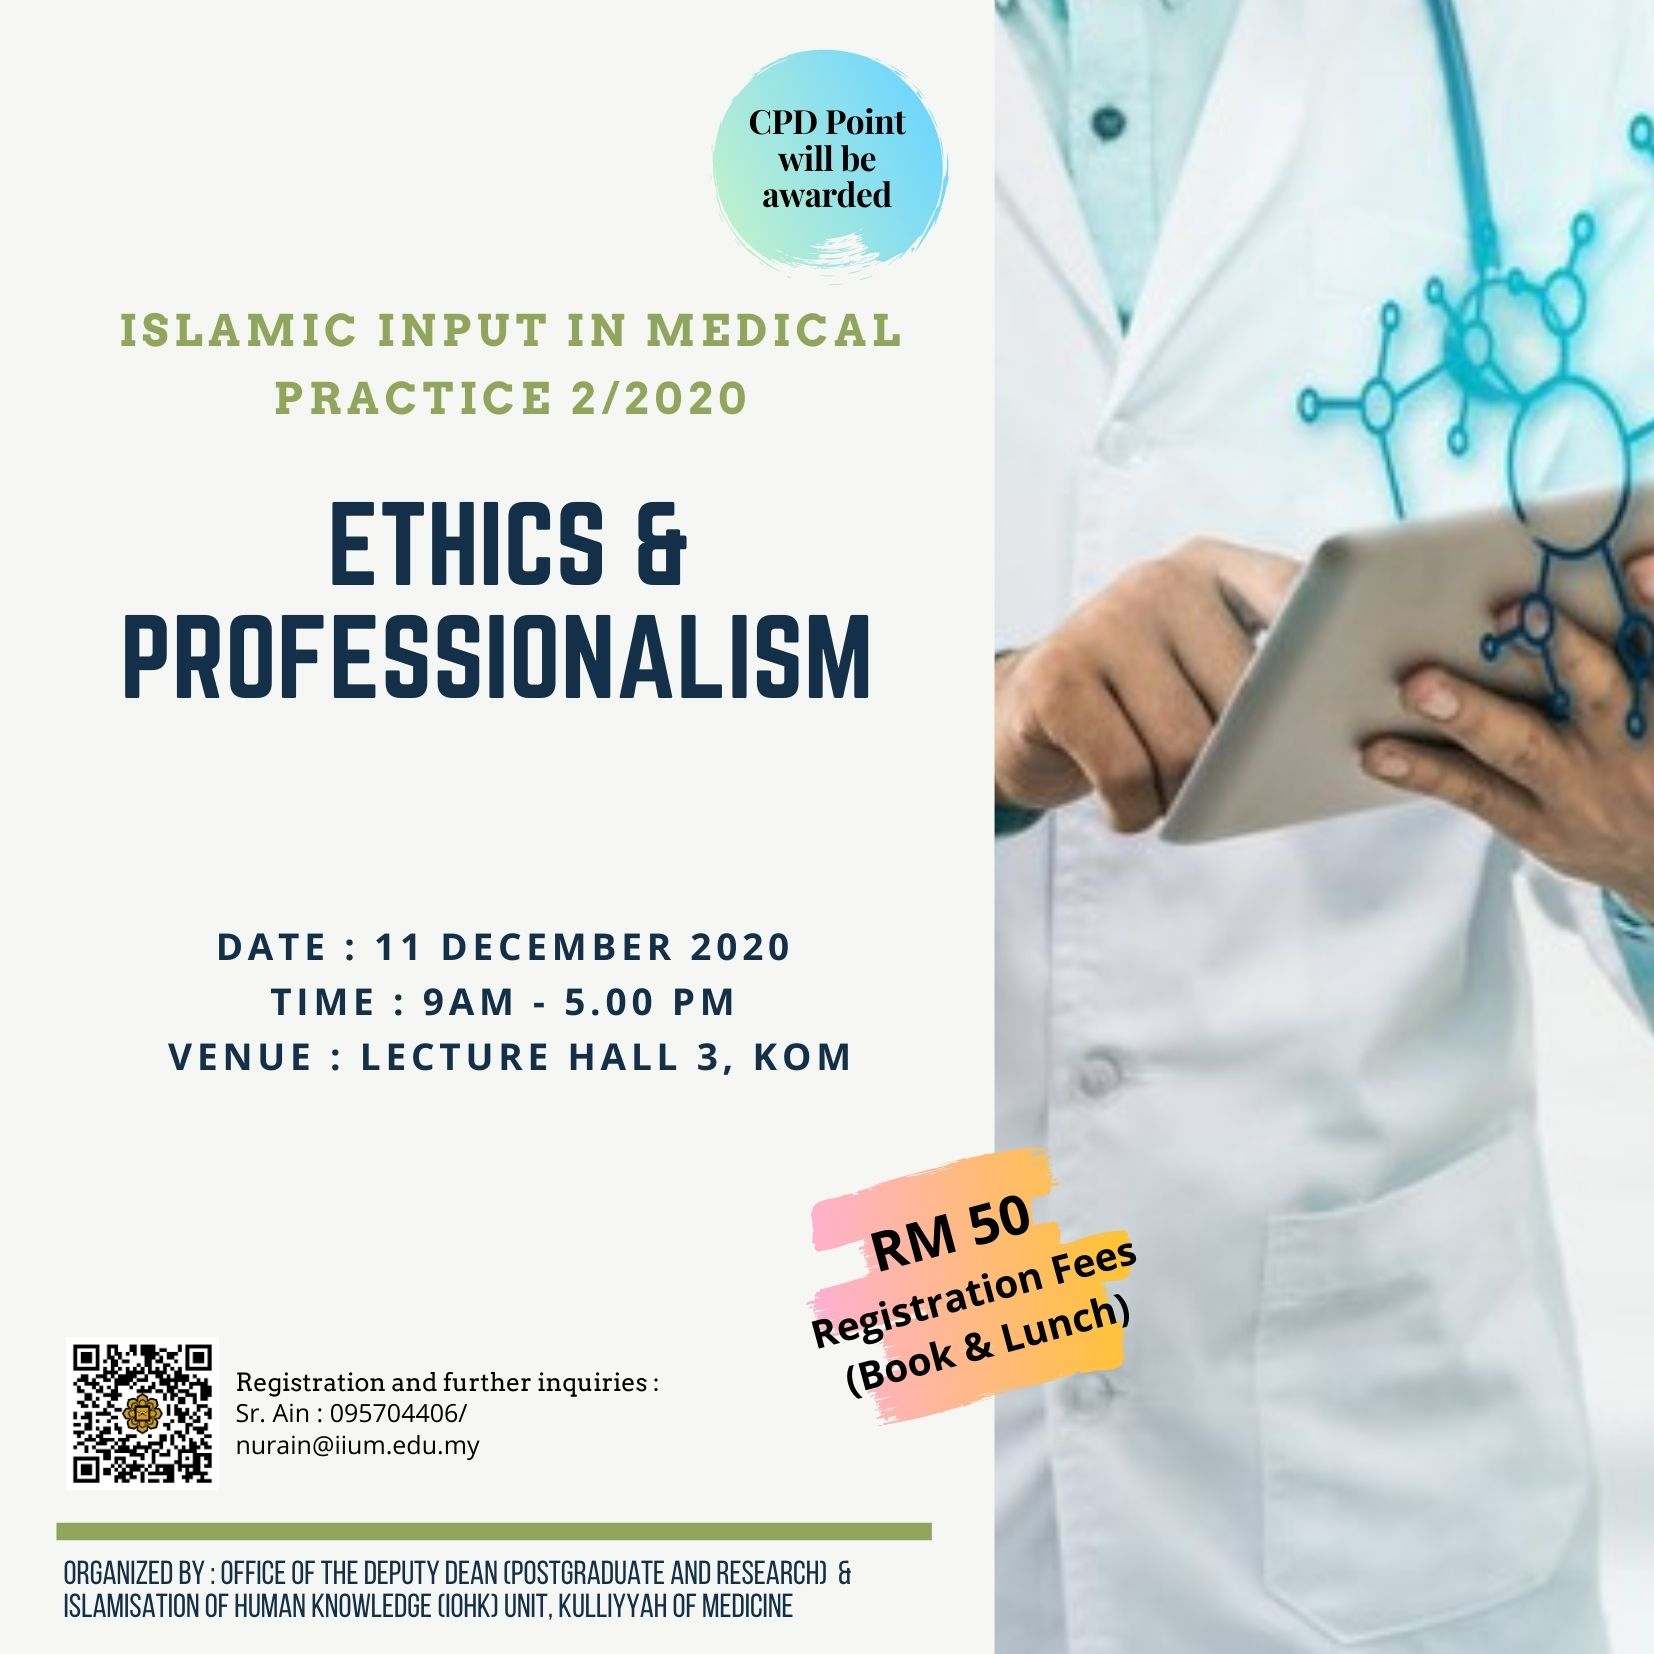 SEMINAR ON ISLAMIC INPUT IN MEDICAL PRACTICE : ETHICS AND PROFESSIONALISM (N0.2/2020)